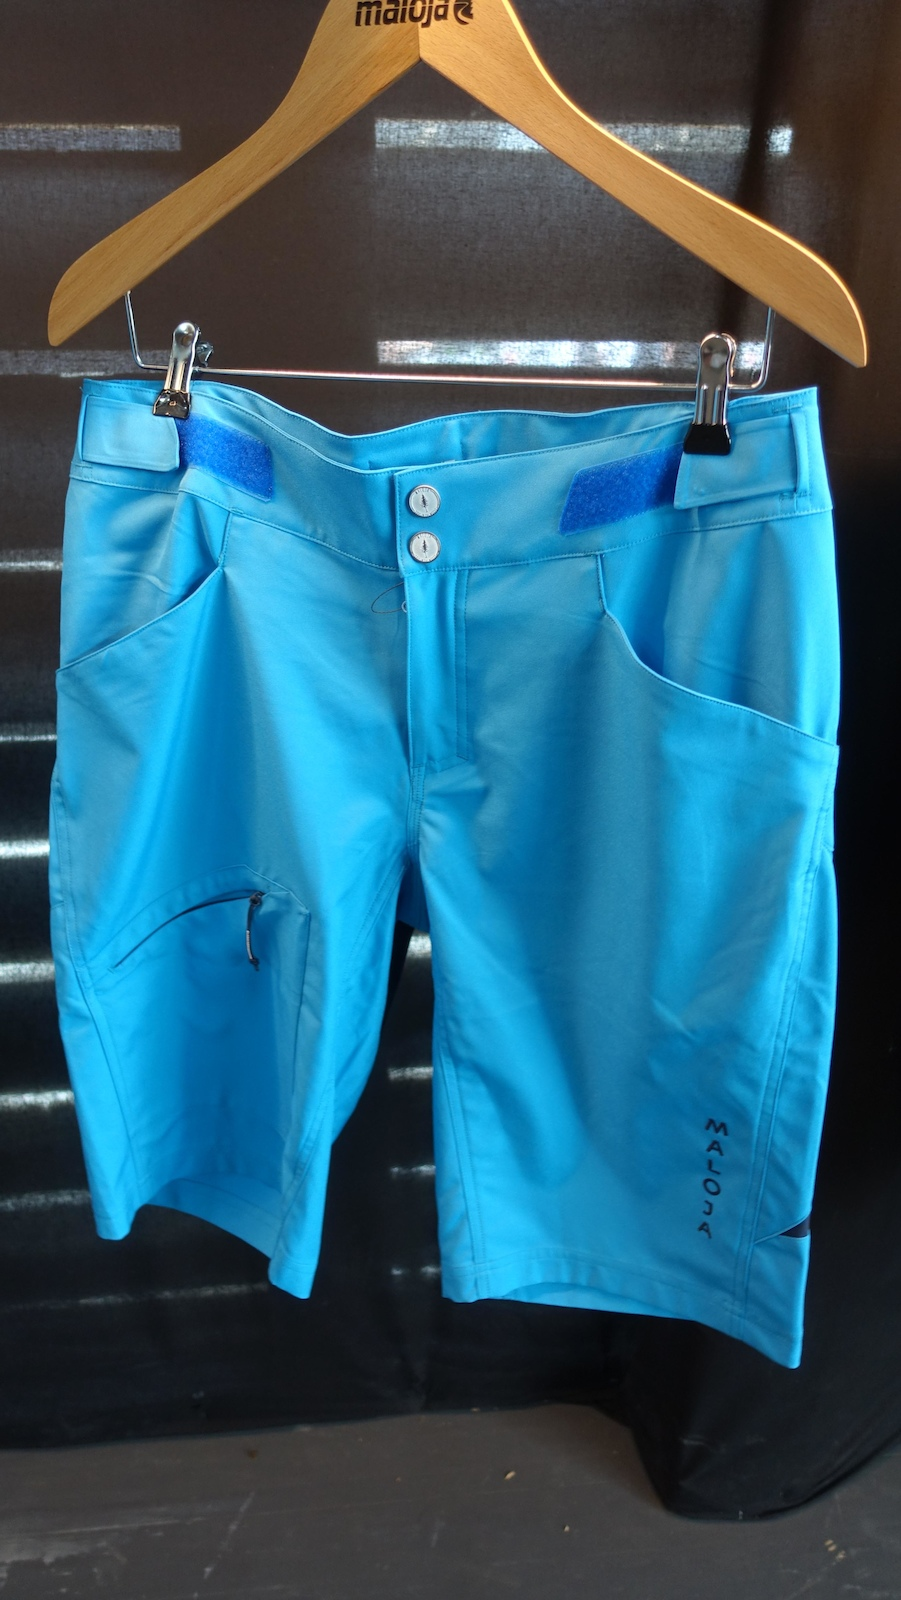 The Reto short is a more traditional-looking riding short.